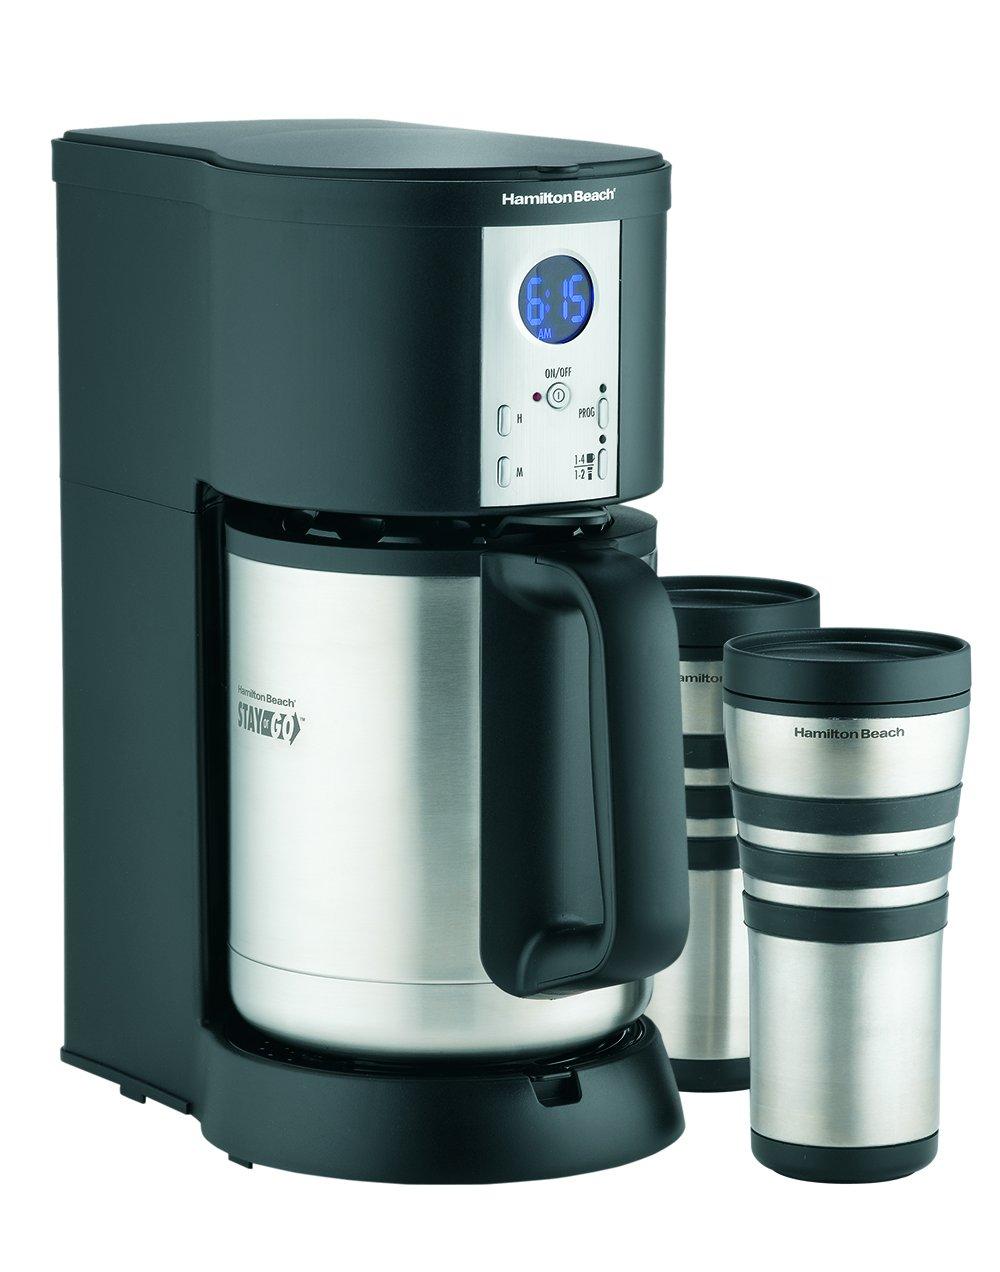 Hamilton Beach Coffee Maker, Stay or Go Digital with Thermal Insulated Carafe (45237R)